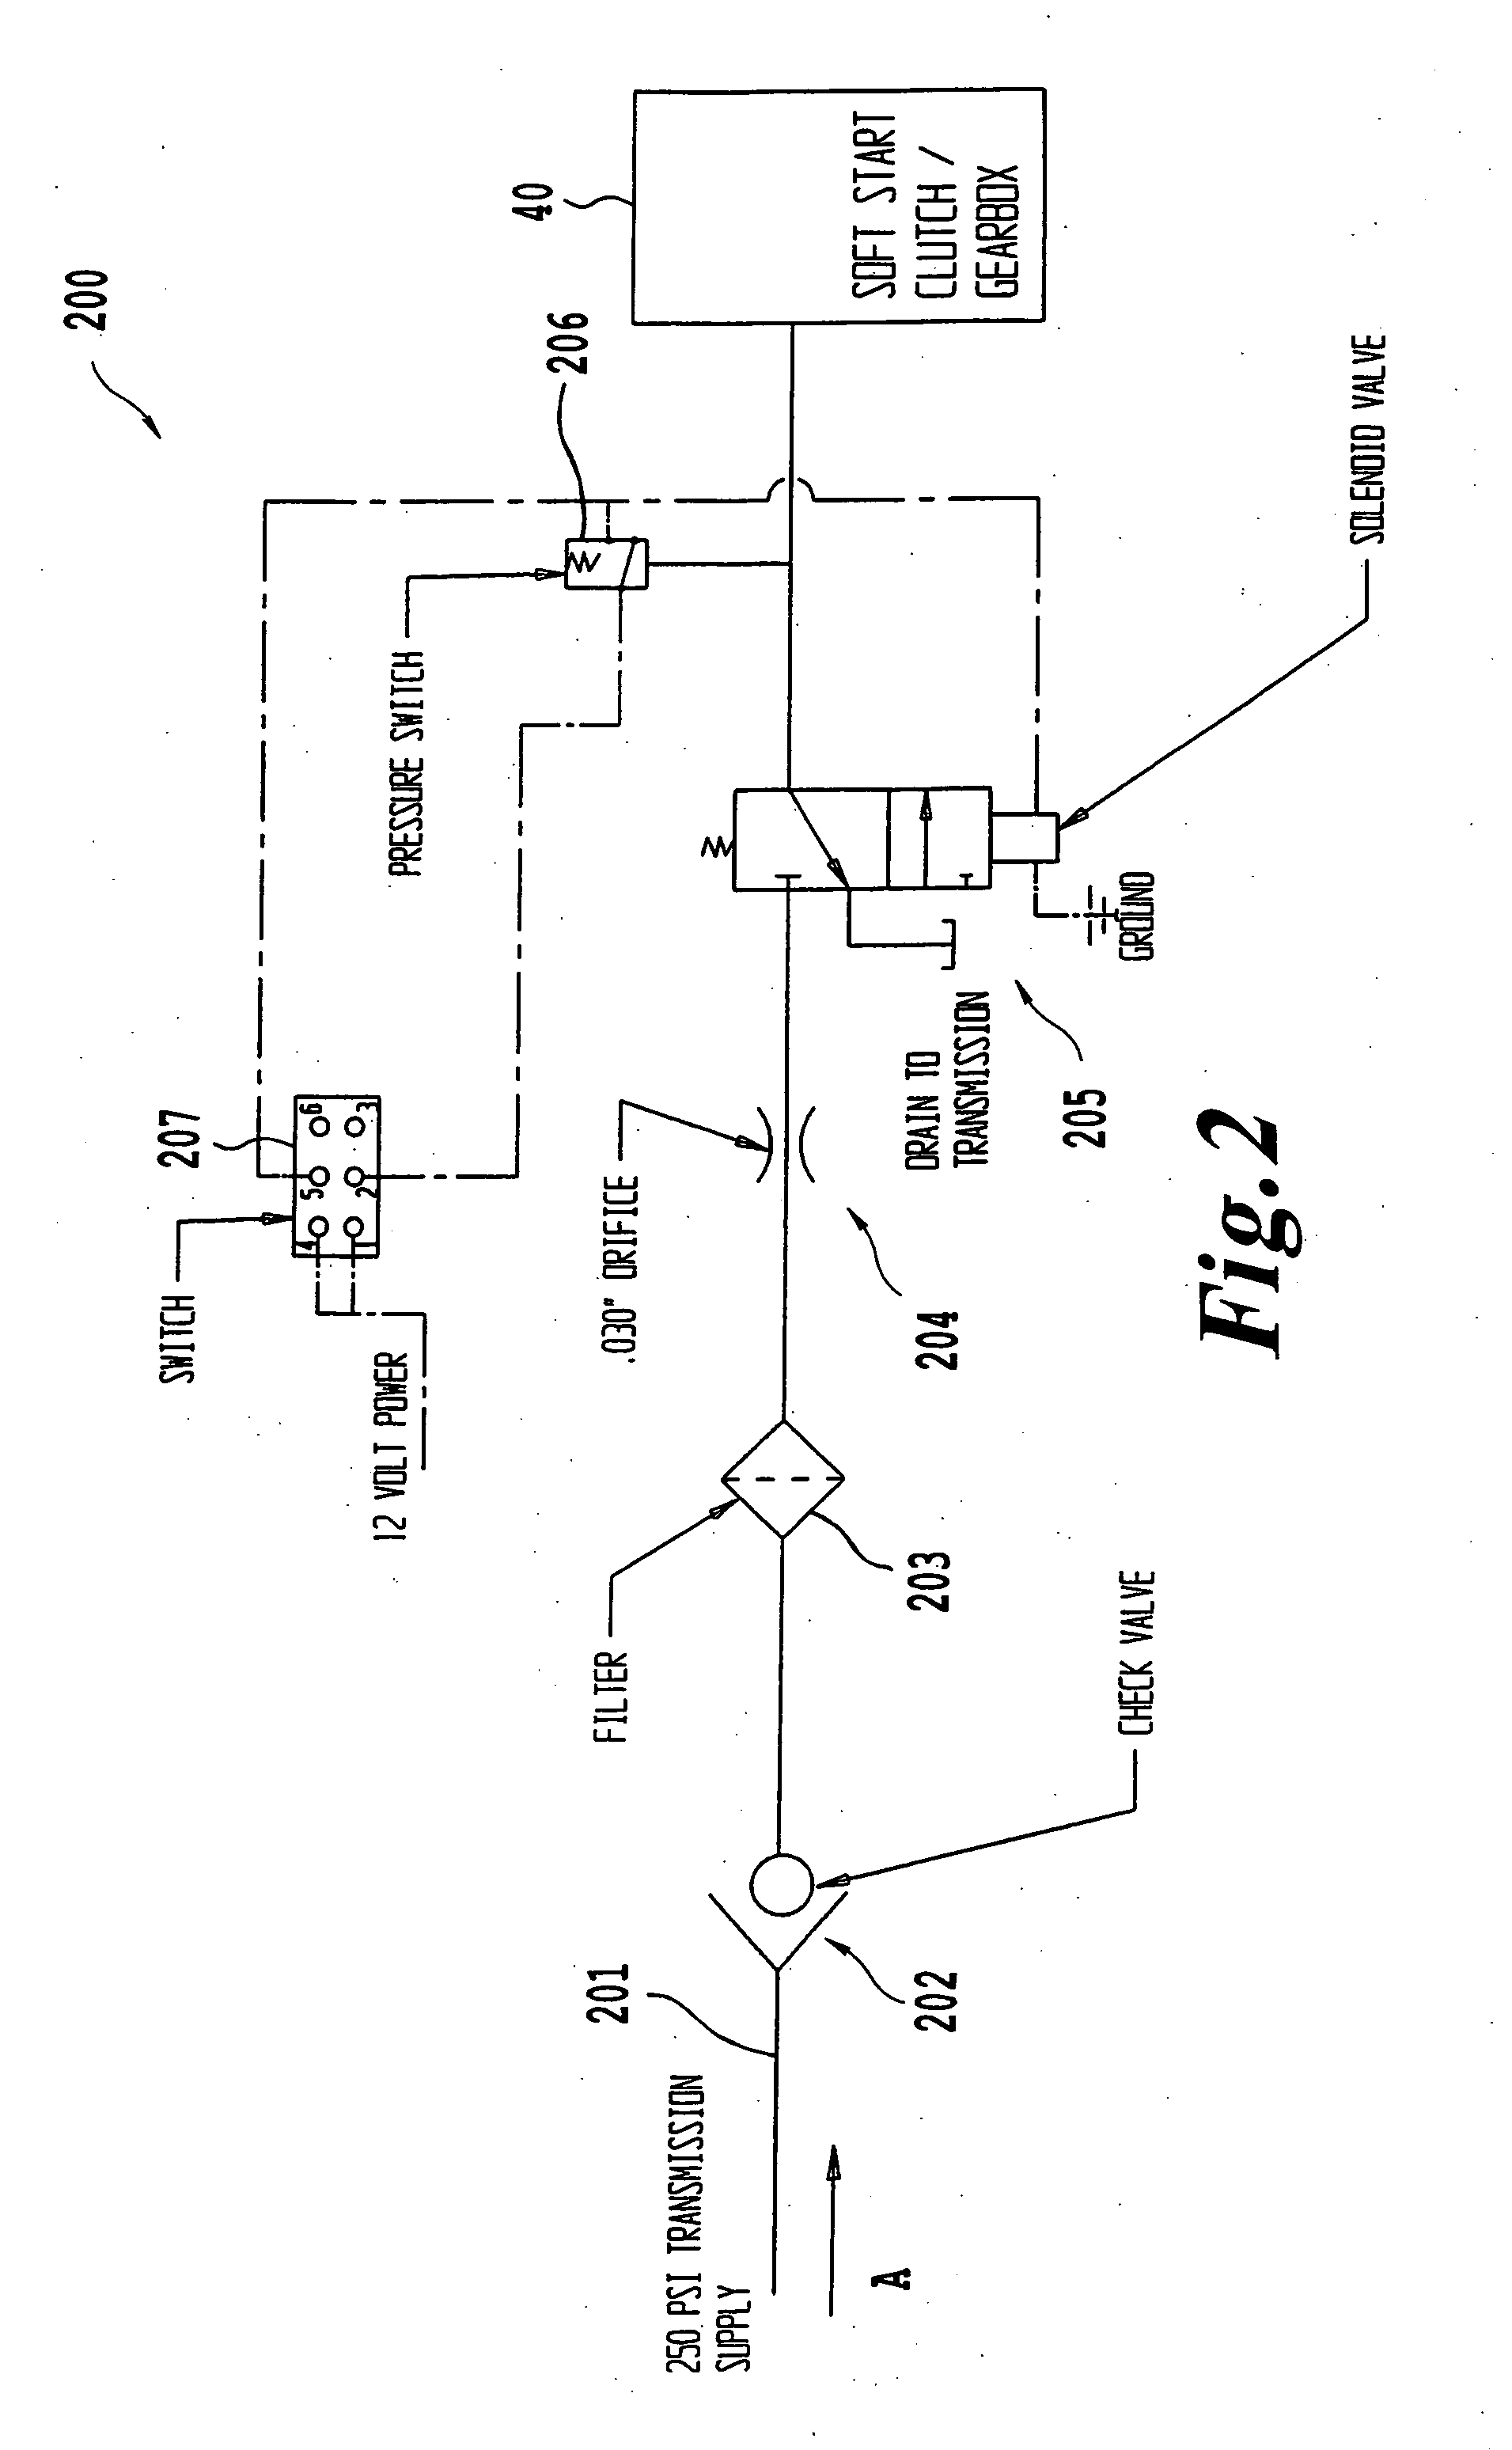 US20060214035A1 20060928 D00003 patent us20060214035 system and method of implementing a soft PTO Switch Wiring Diagram for Massey Furgeson at edmiracle.co